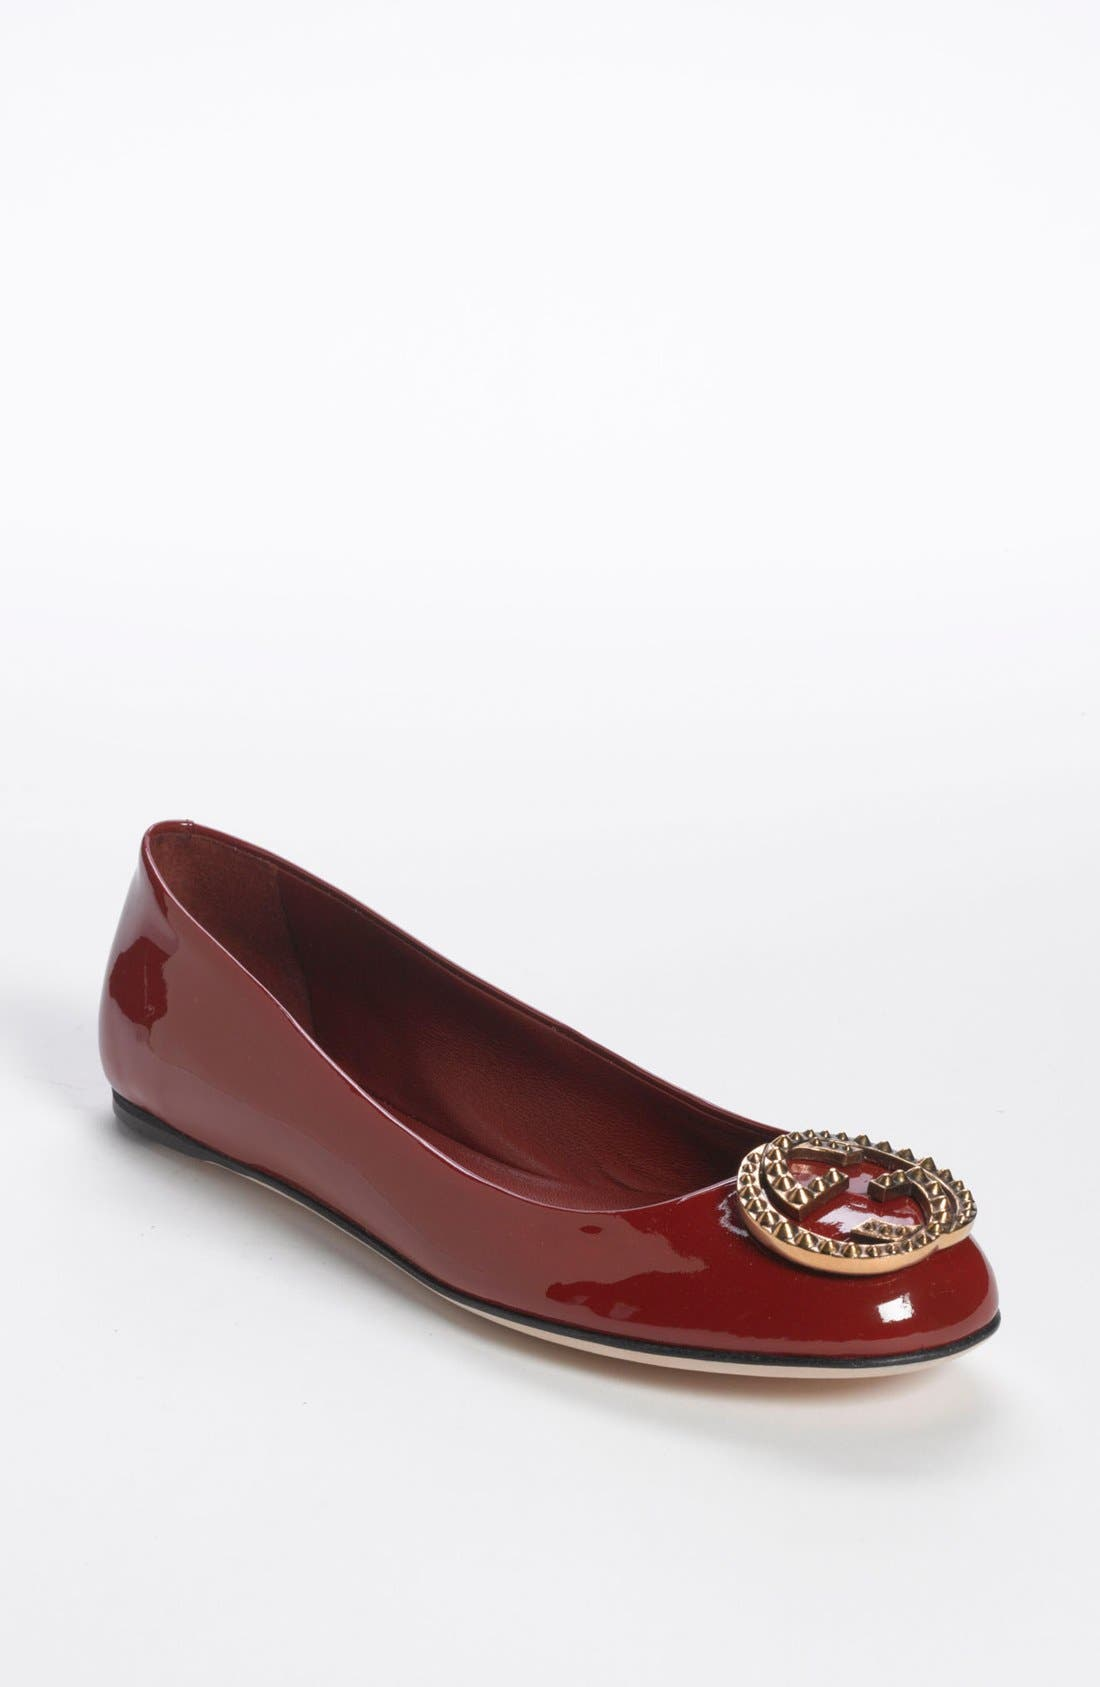 Alternate Image 1 Selected - Gucci Ballerina Flat